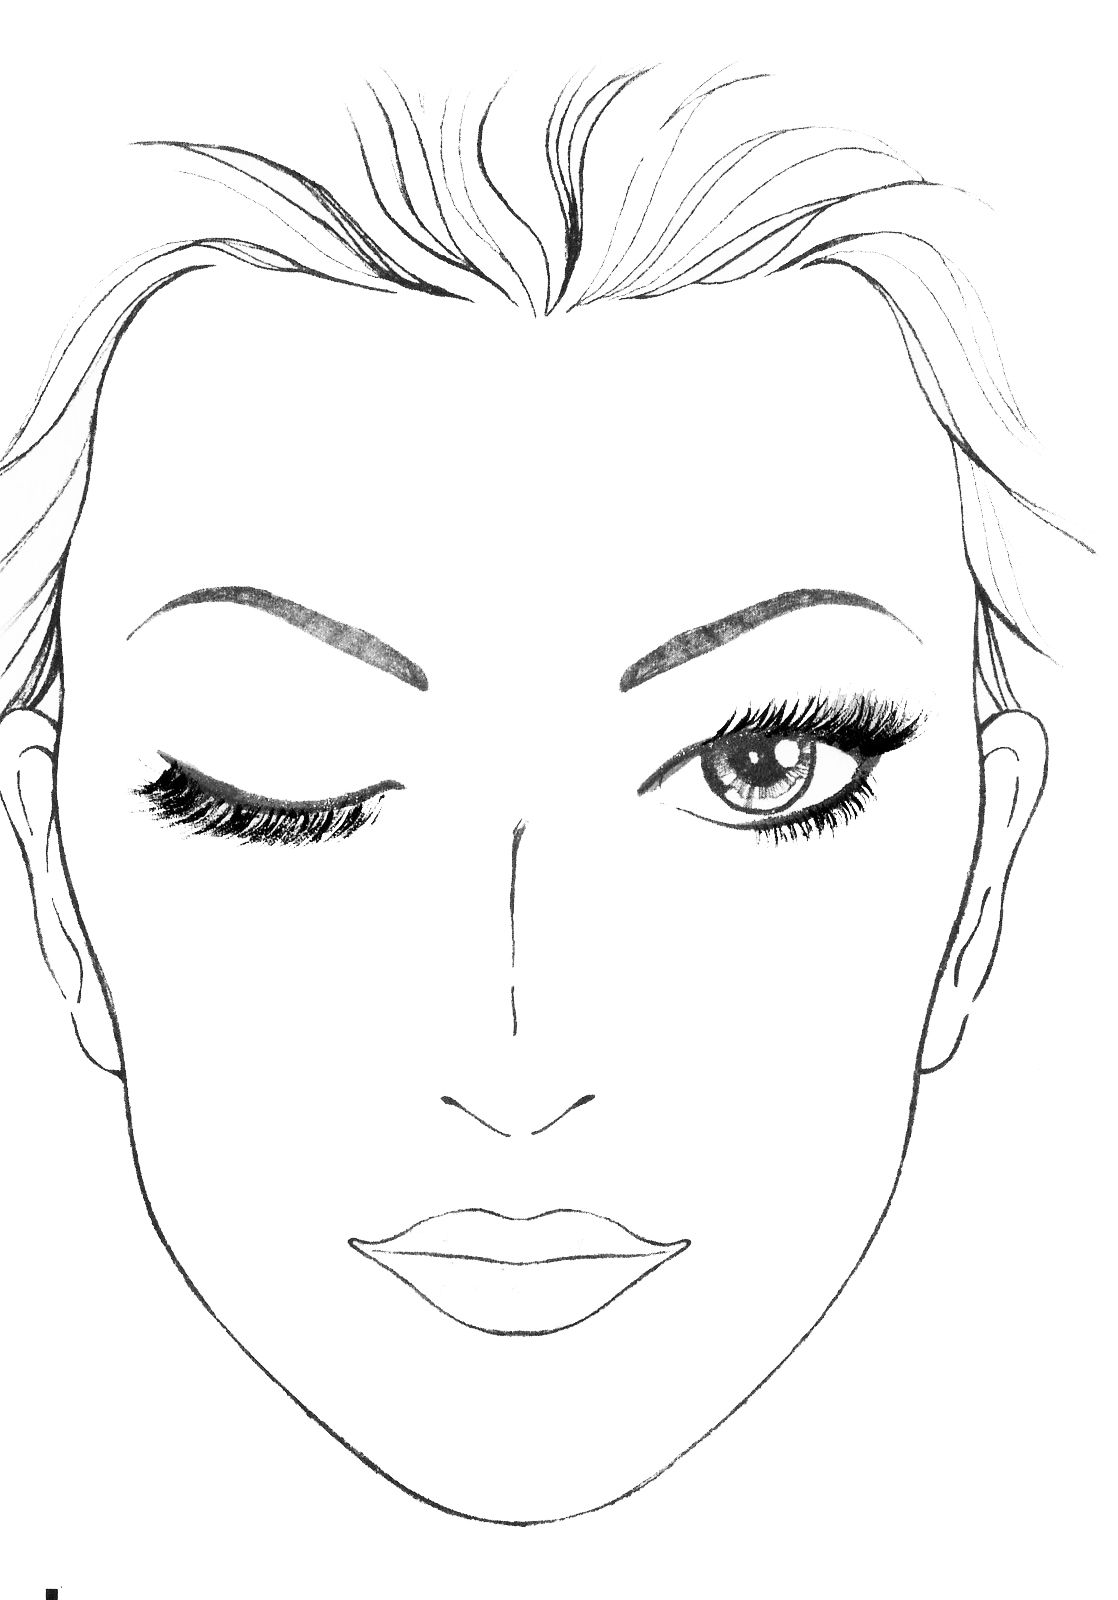 hight resolution of blank mac face charts makeup anarchist pictures this is botox face diagram man botox face diagram man